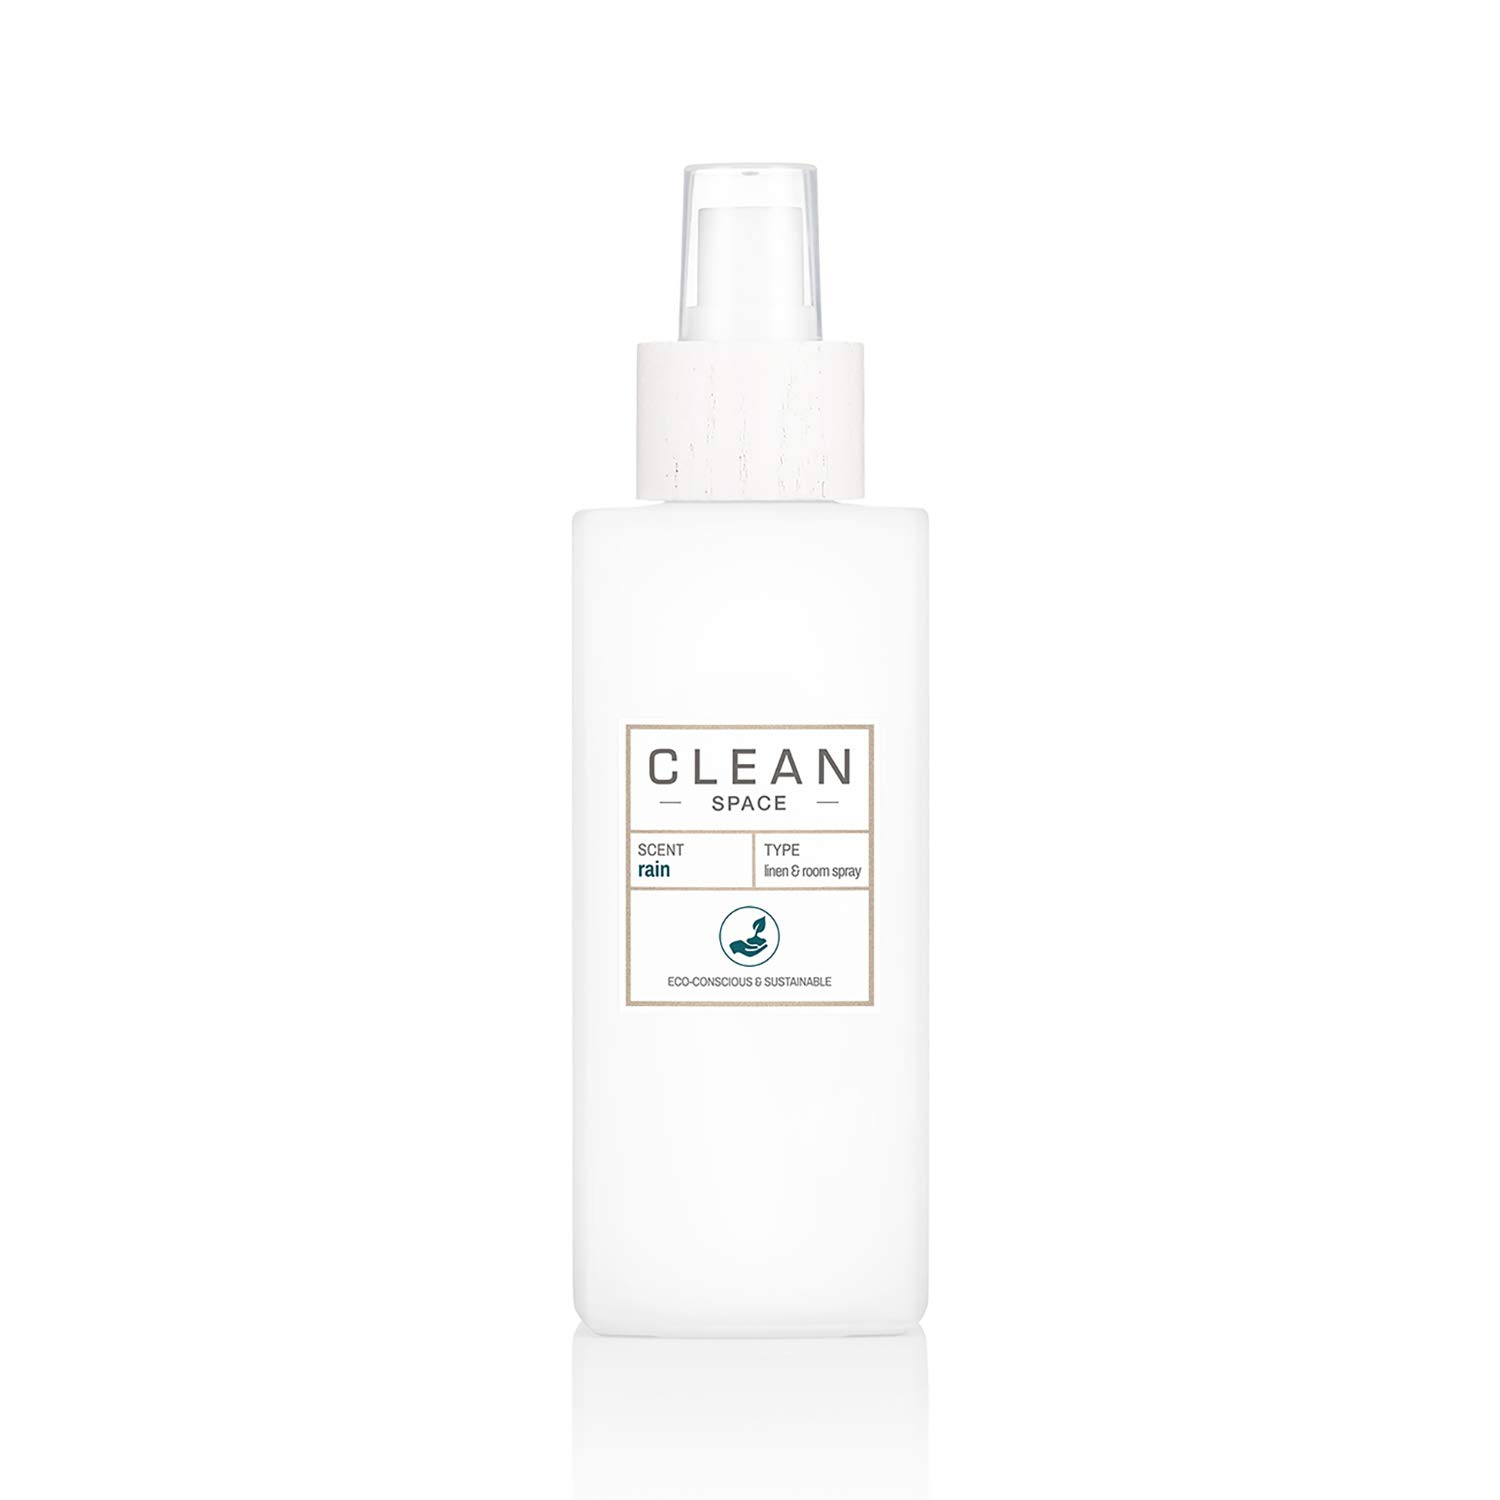 CLEAN SPACE Linen & Room Spray | Aromatic Mist in Reusable Glass Vase | Gentle Vegan Formula | Perfect Freshener for Fabrics or Air | 5.0 oz/148 mL